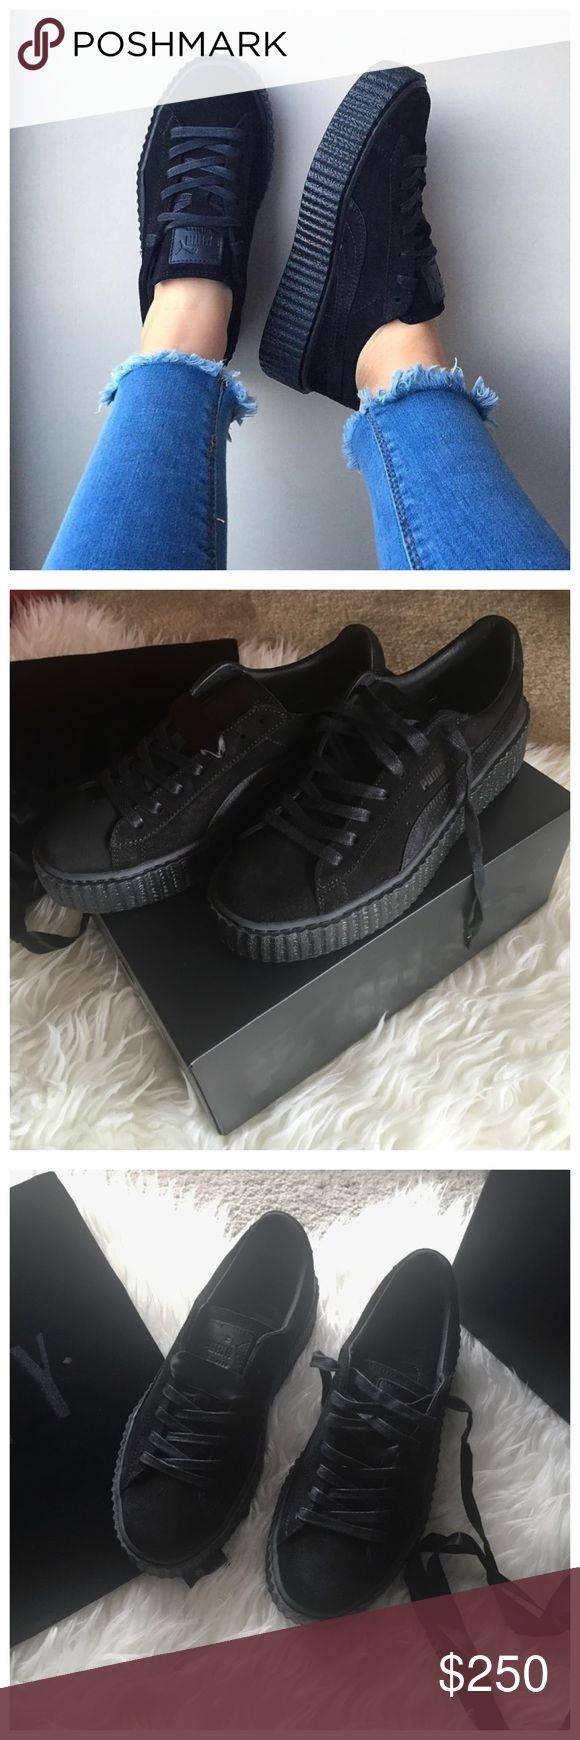 "Rihanna x Fenty Puma Black Satin Suede Creepers ⭐️ FOR SALE ⭐️ Item: Rihanna x Fenty Puma Black Satin Creepers Details: Brand new in box, never worn. Size 8.5 in women's.  Suede upper, 1.5"" gum sole.  Comes with regular waxed laces & wide satin laces, velvet Fenty dust bag & original Puma box.  - NO TRADES OR HOLDS - No lowballing or ""lowest"" - please use the offer button - Please do not comment unless interested  - All purchases come with free stickers & jewelry while supplies last!  Puma…"